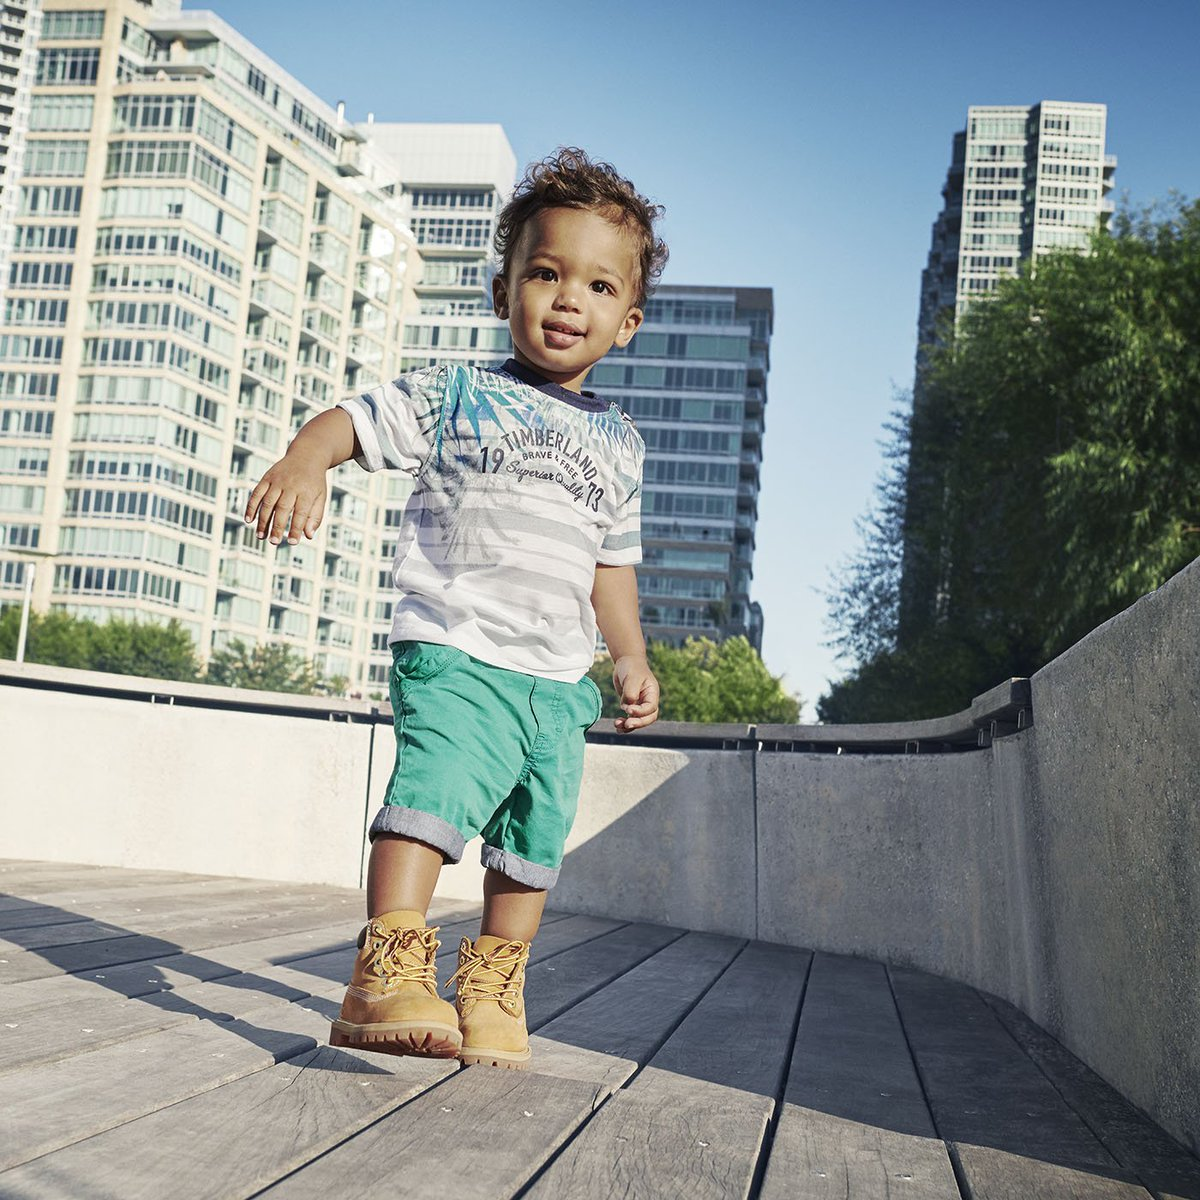 These boots were made for walkers. #TimberlandKids    https://t.co/TgHLUUYNUu https://t.co/fVyf8UFOhO